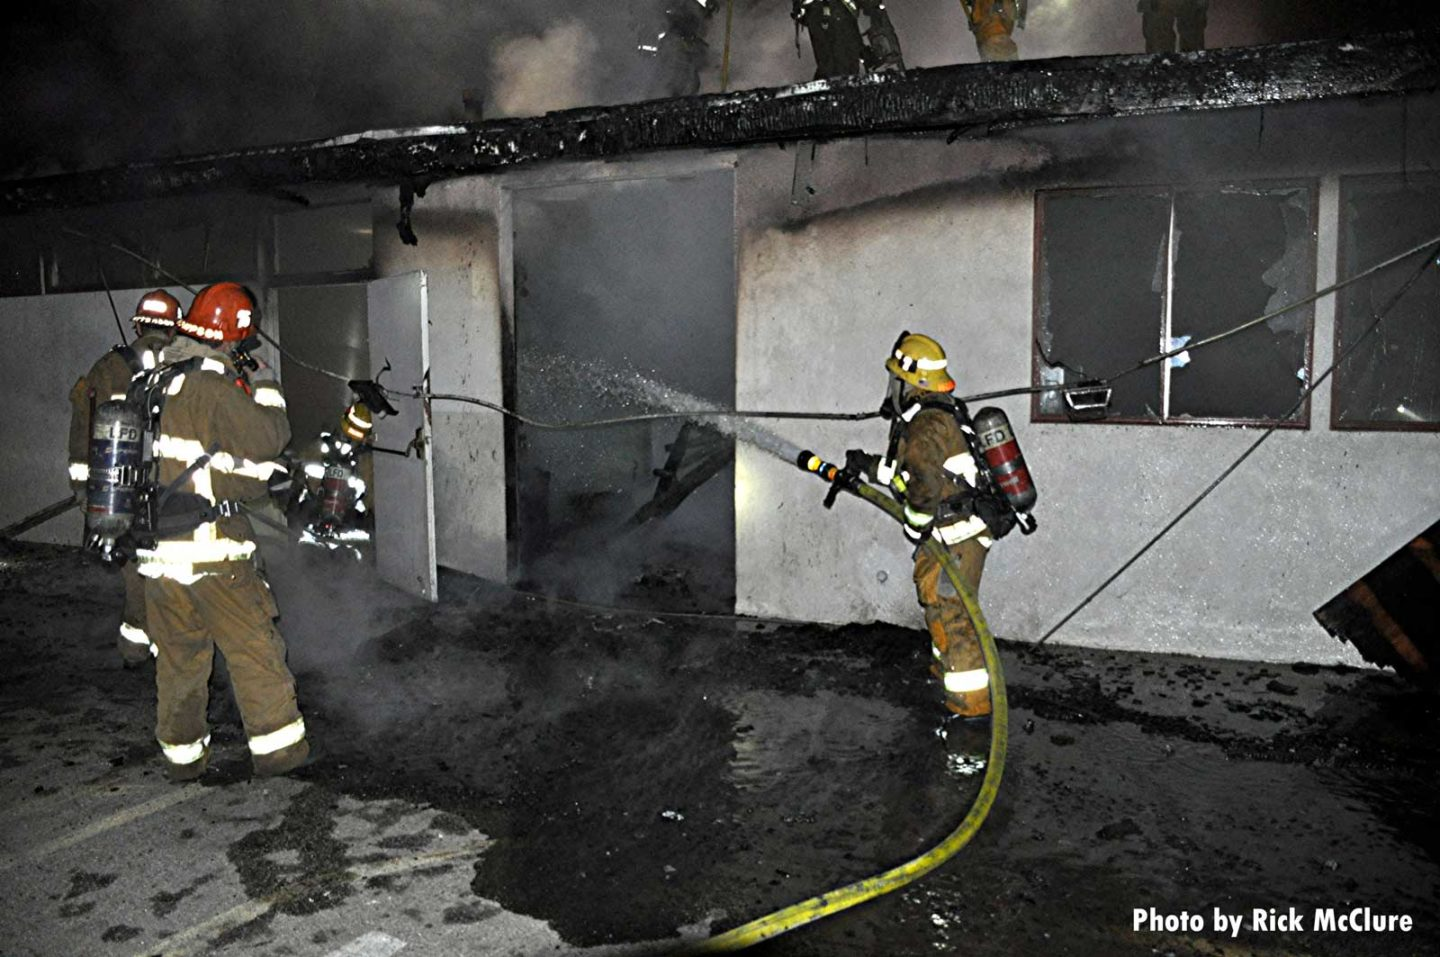 A firefighter with a hose sprays water into the building